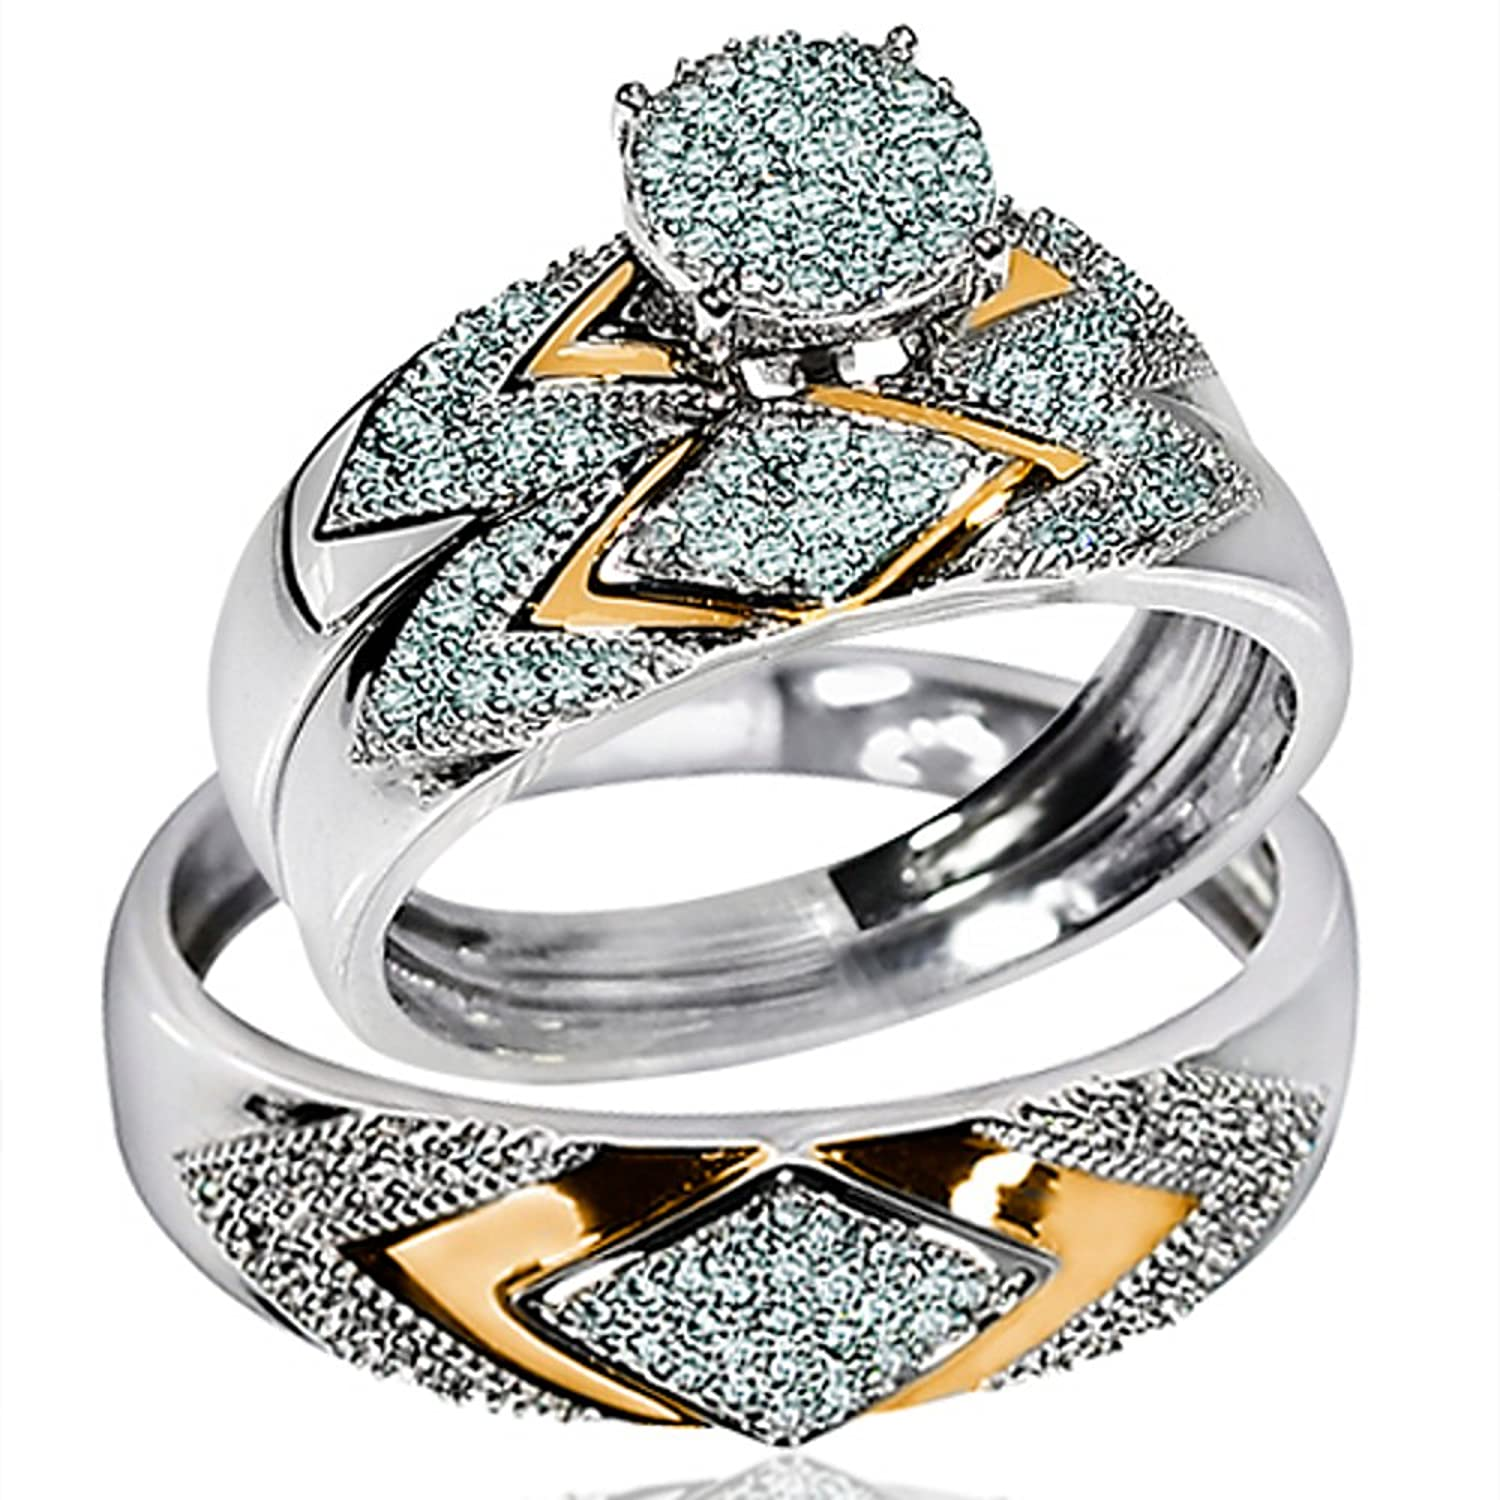 ring white bands wedding platinum band gold amazing set engagement sets trio diamond ebay jewelry exhibition bridal